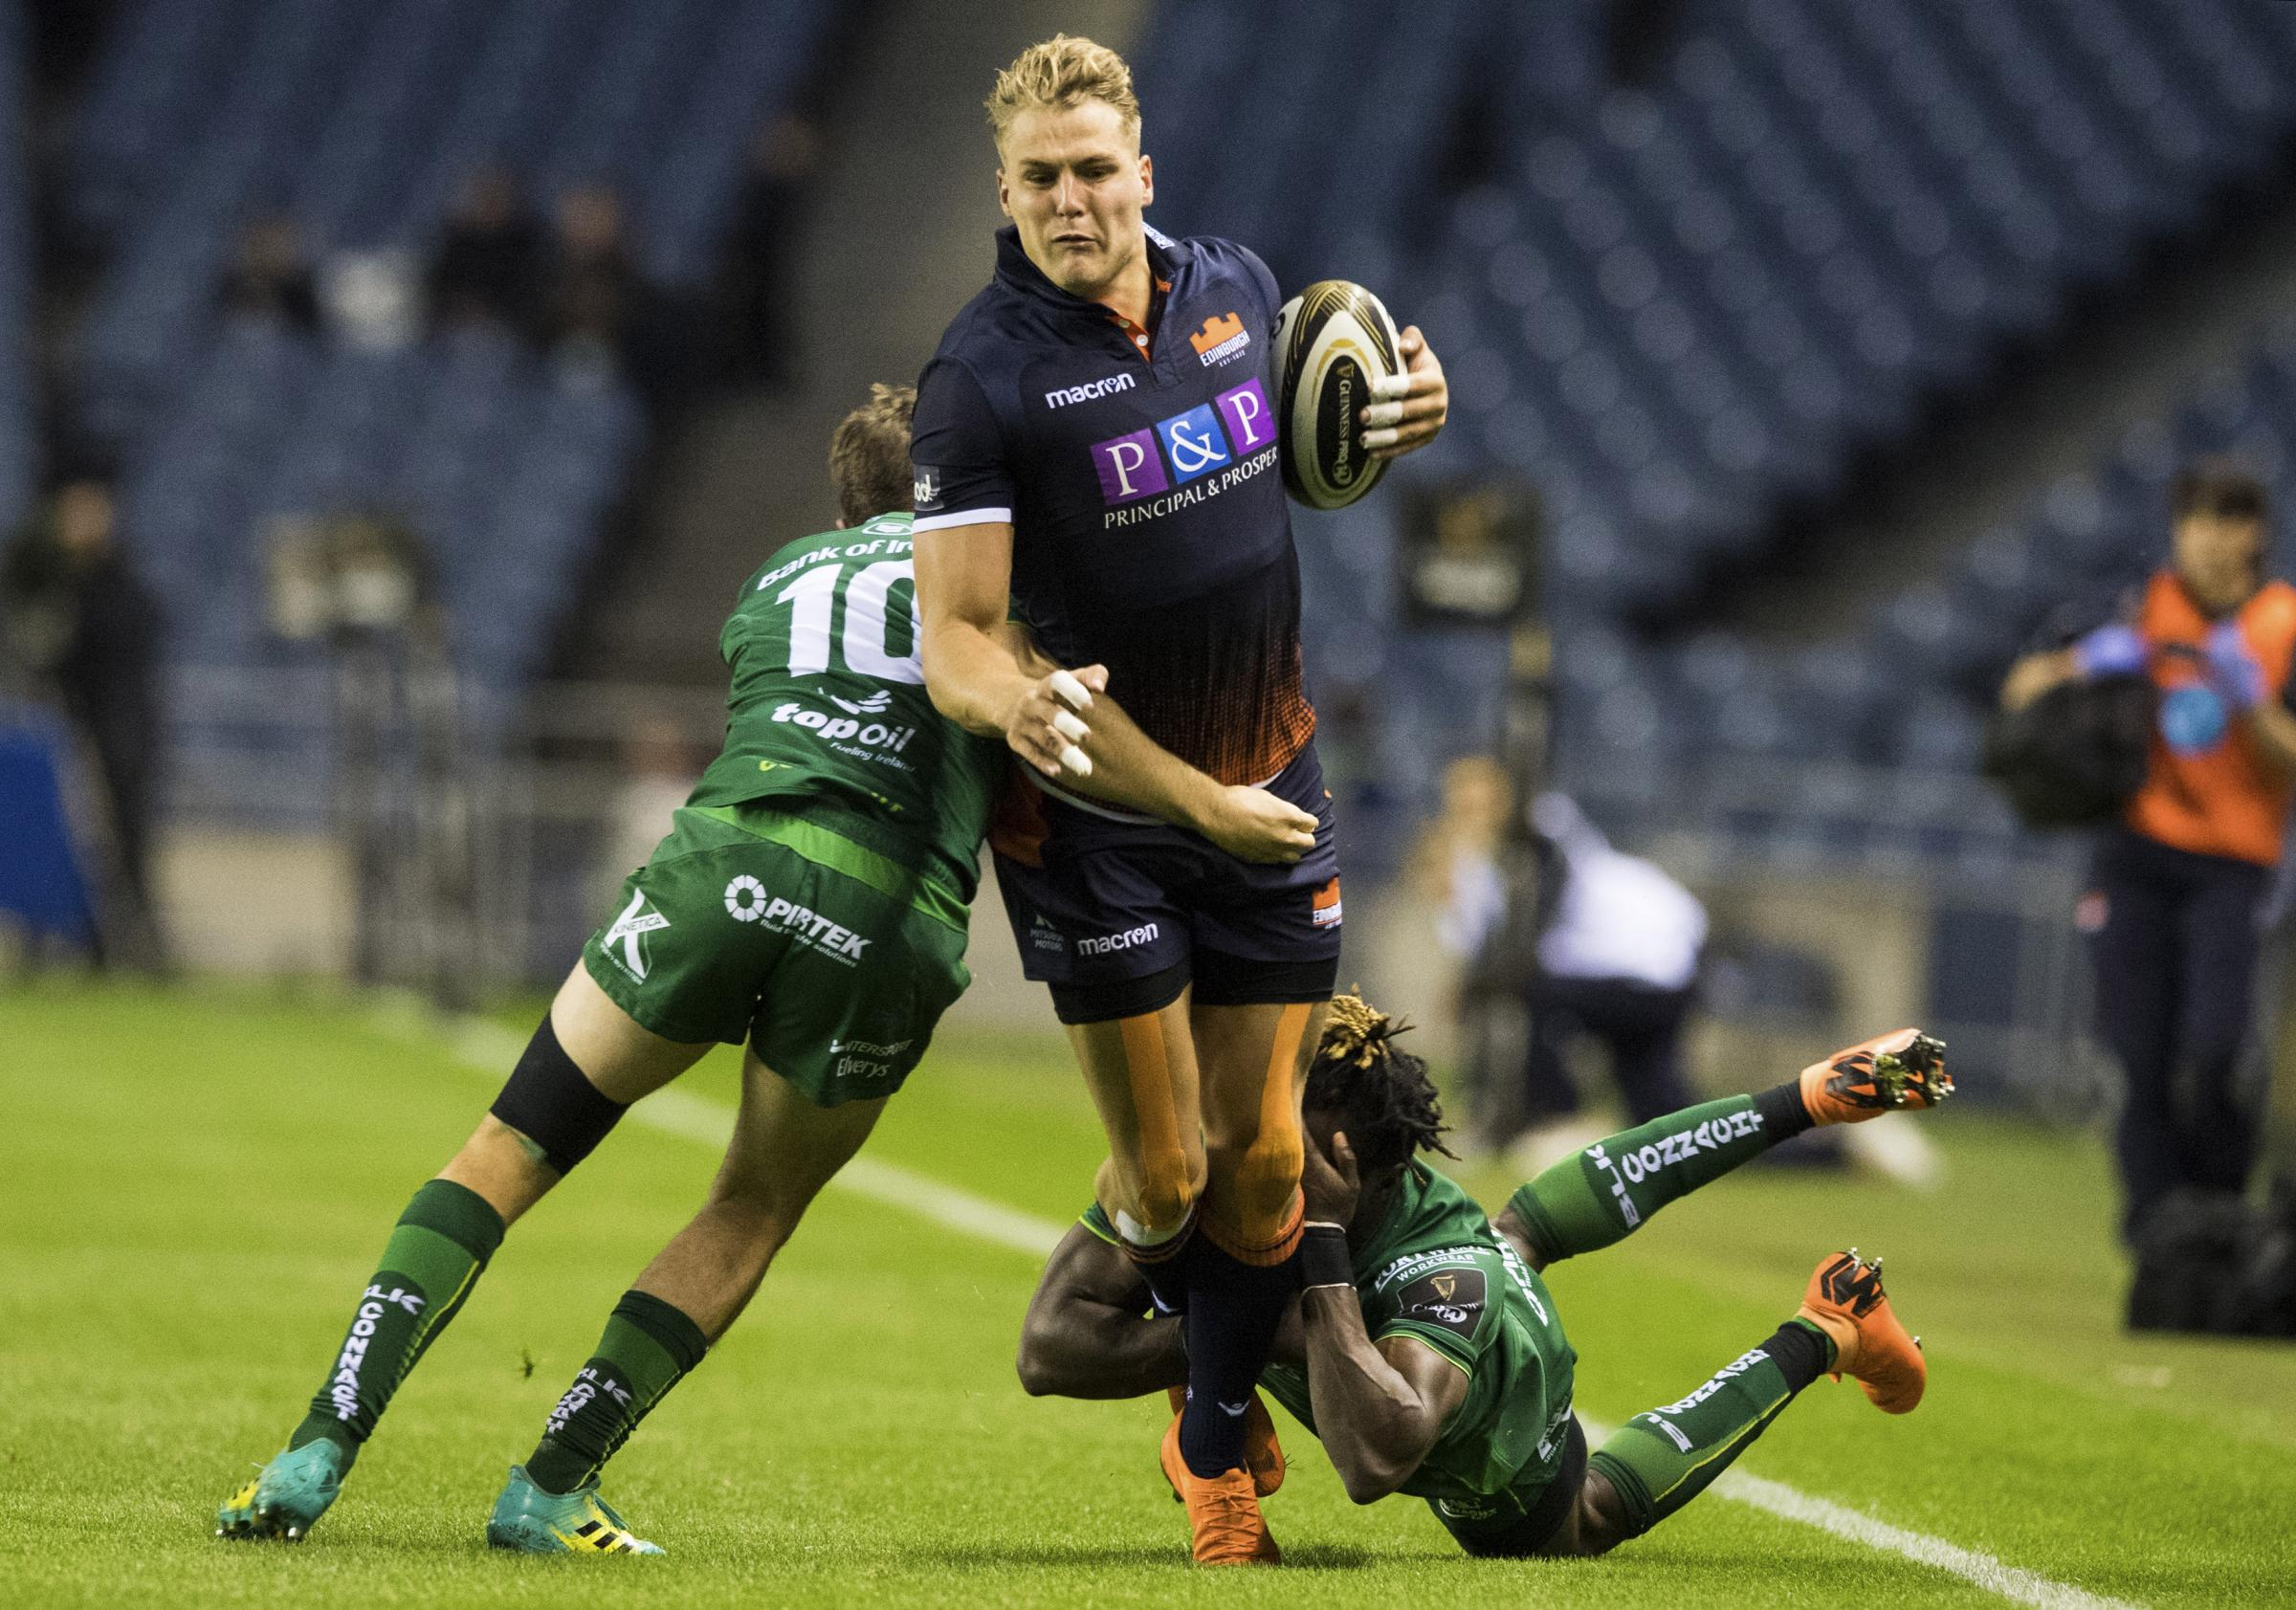 14/09/18 GUINNESS PRO14 . EDINBURGH RUGBY V CONNACHT (17-10). BT MURRAYFIELD - EDINBURGH. Edinburgh's Duhan Van Der Merwe.